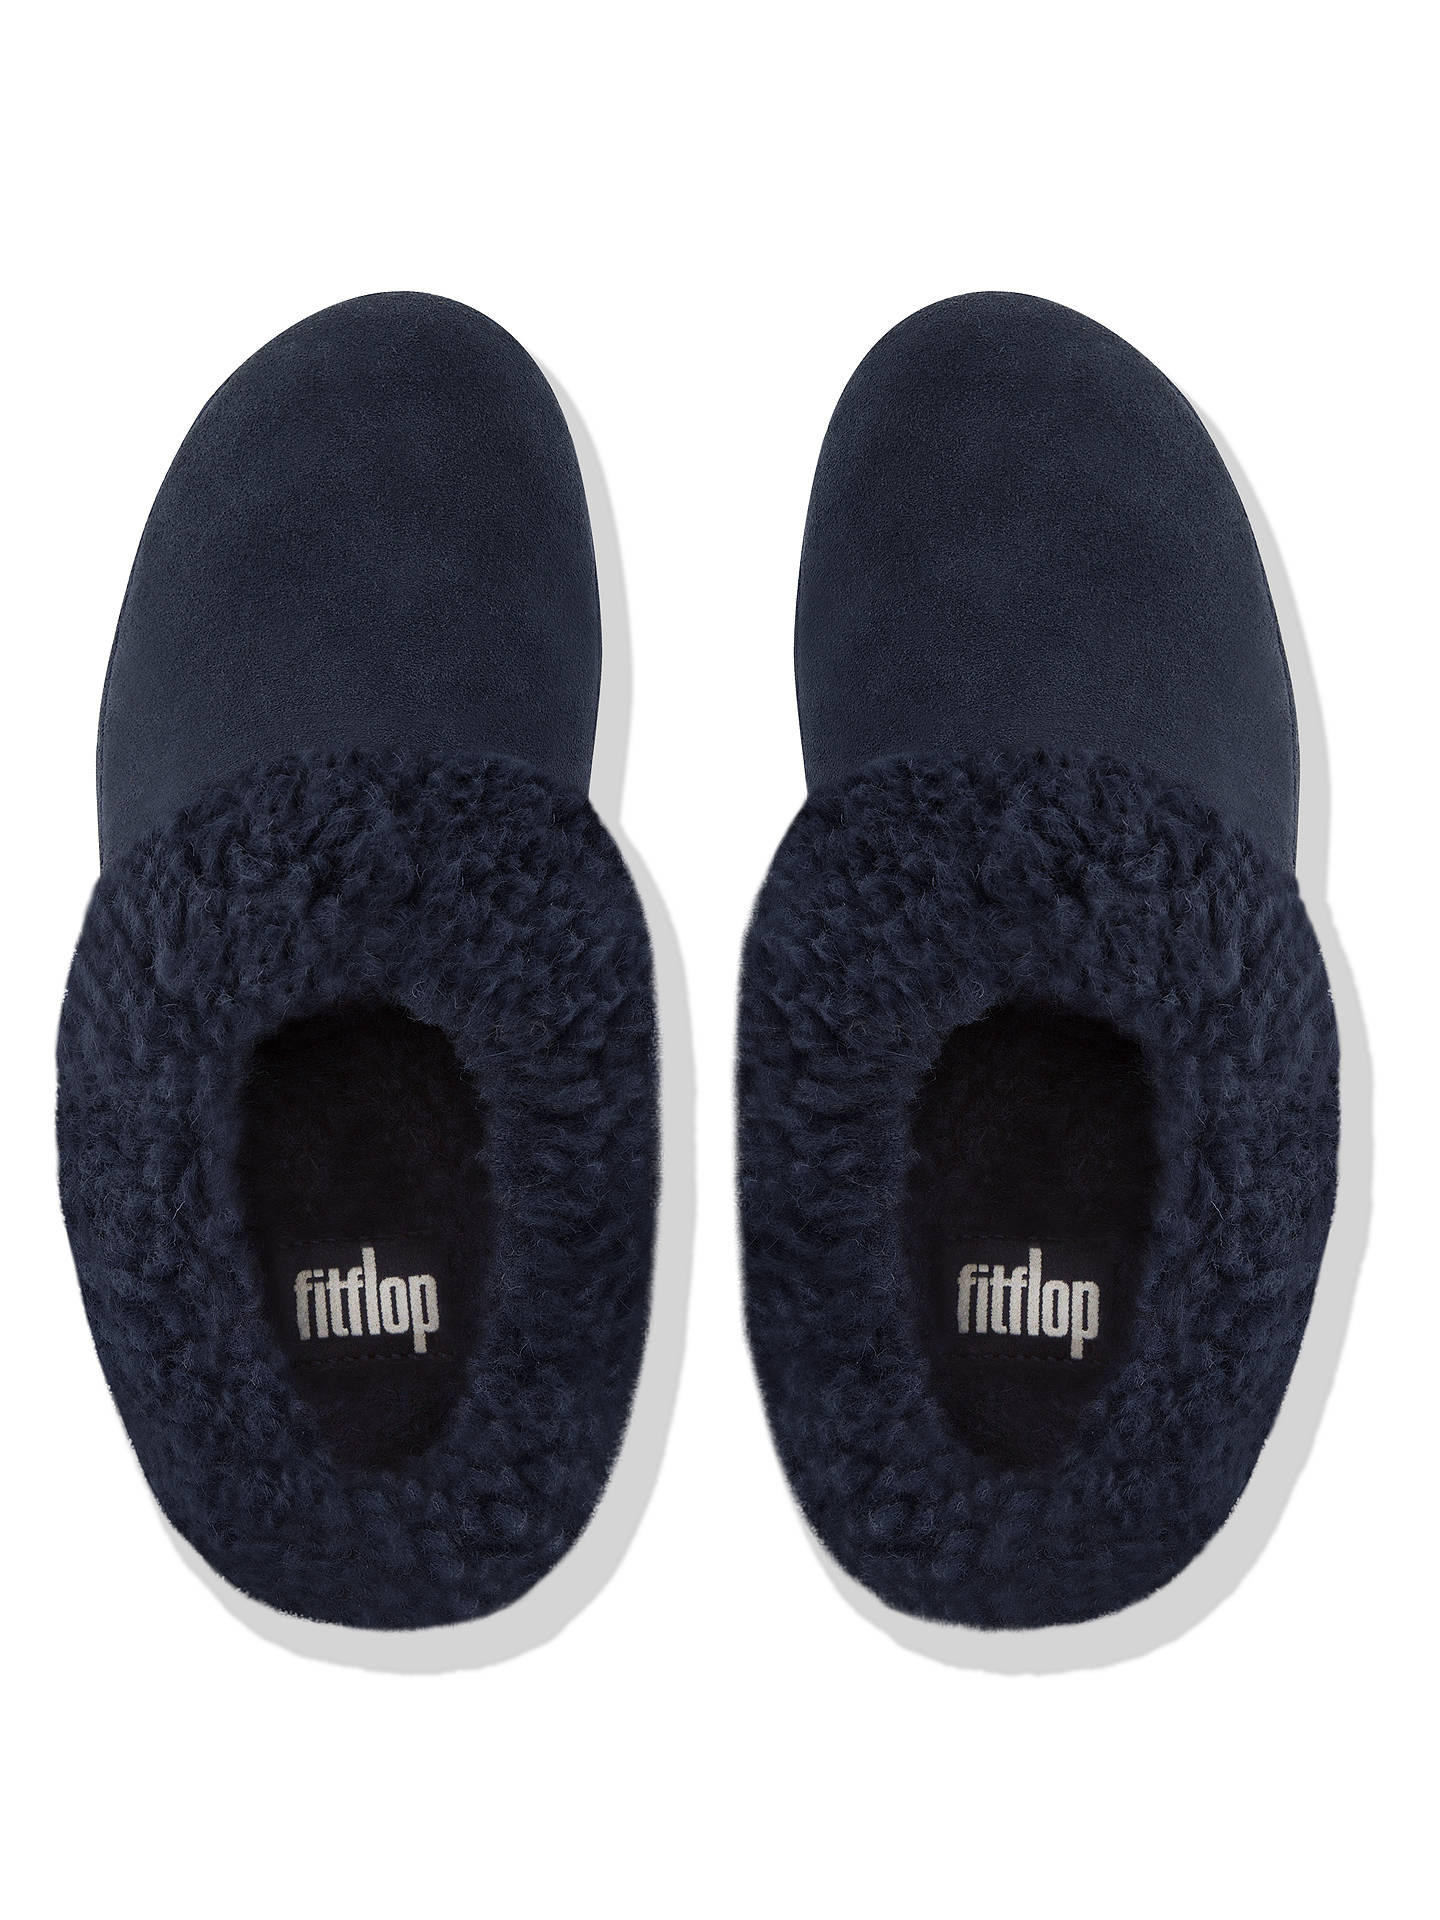 952d01d8ed17c FitFlop Snug Loafer Slippers at John Lewis   Partners